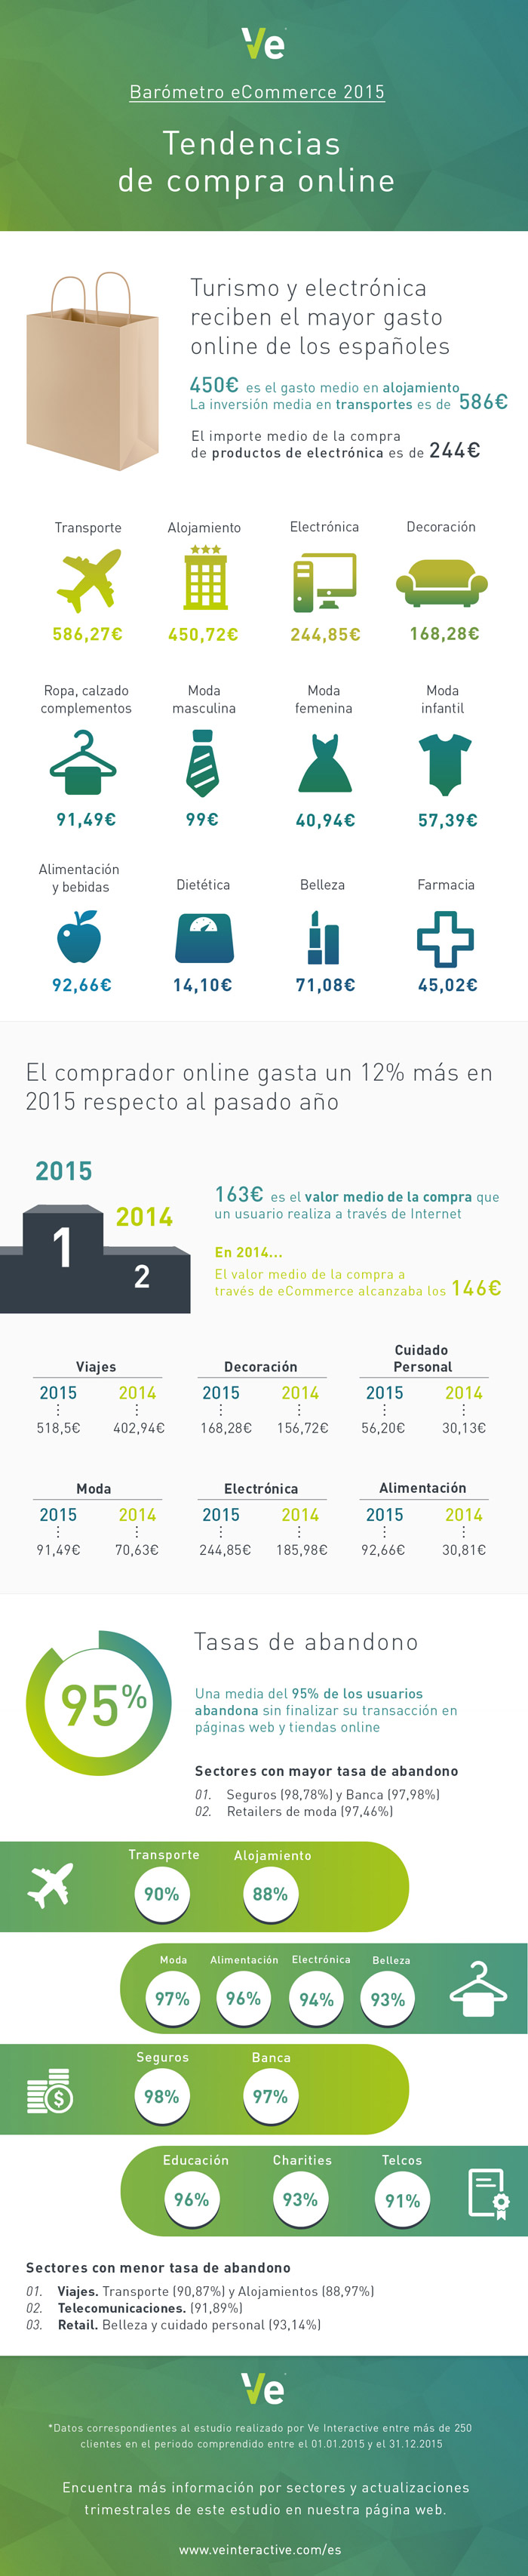 infografia_ve_md